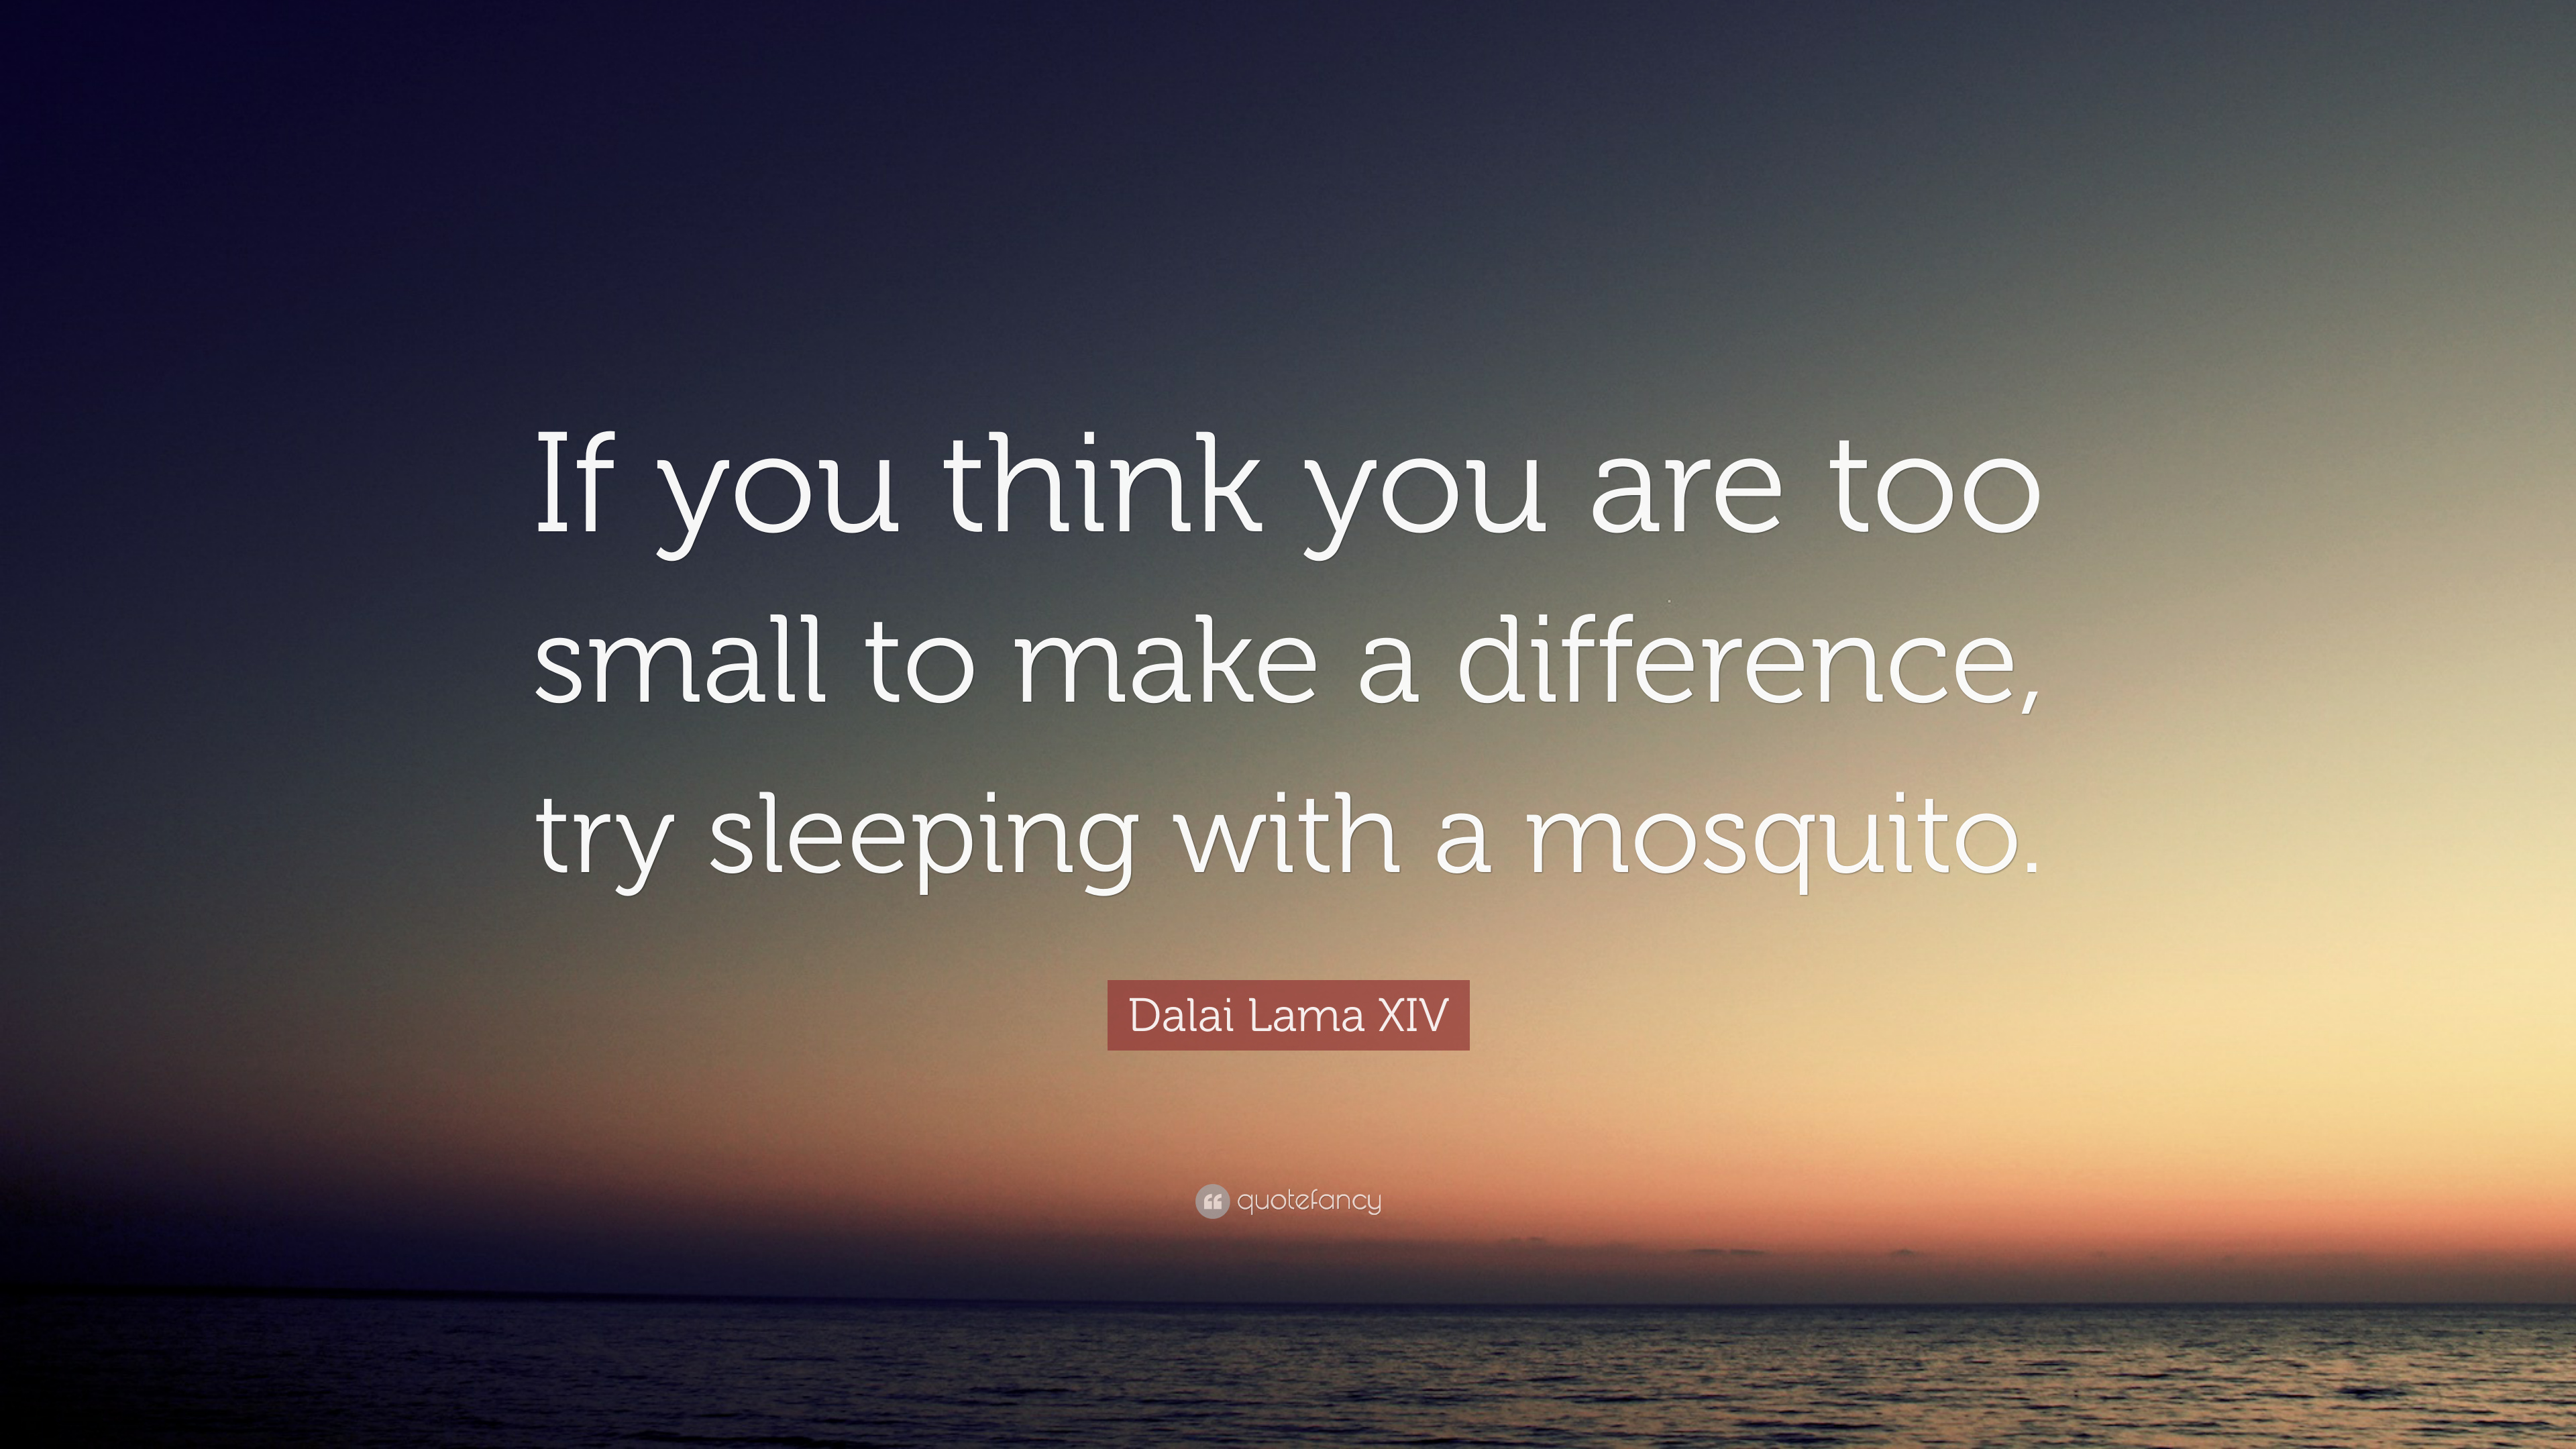 Dalai Lama Quotes Wallpapers Dalai Lama Xiv Quote If You Think You Are Too Small To